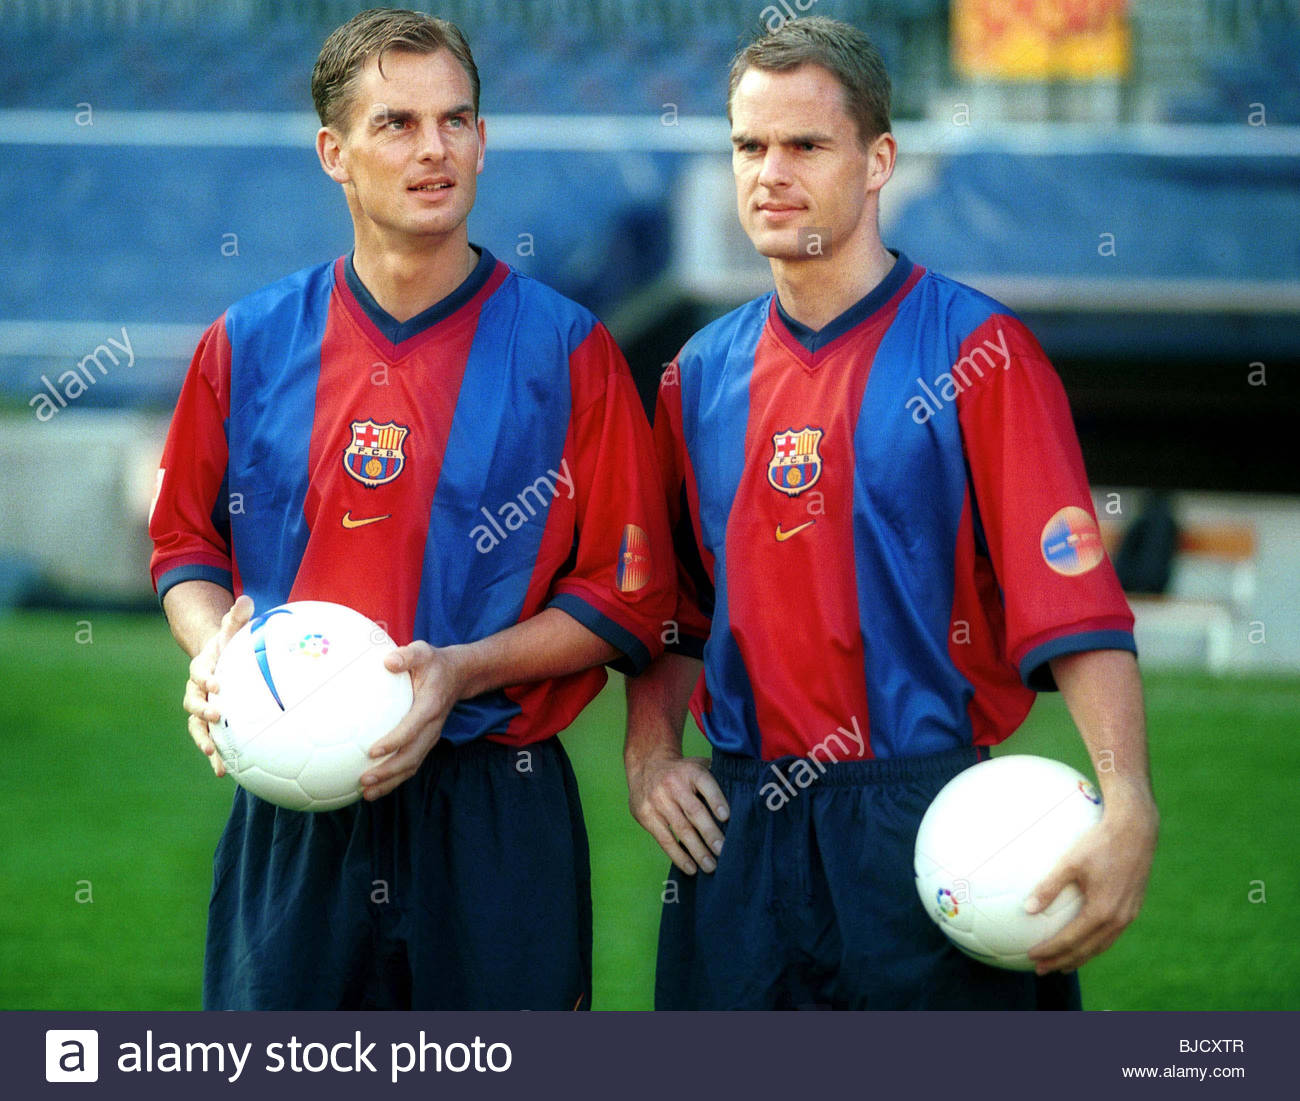 SEASON 1998/1999 BARCELONA Ronald (left) and Frank de Boer after signing for Spanish giants Barcelona. - Stock Image